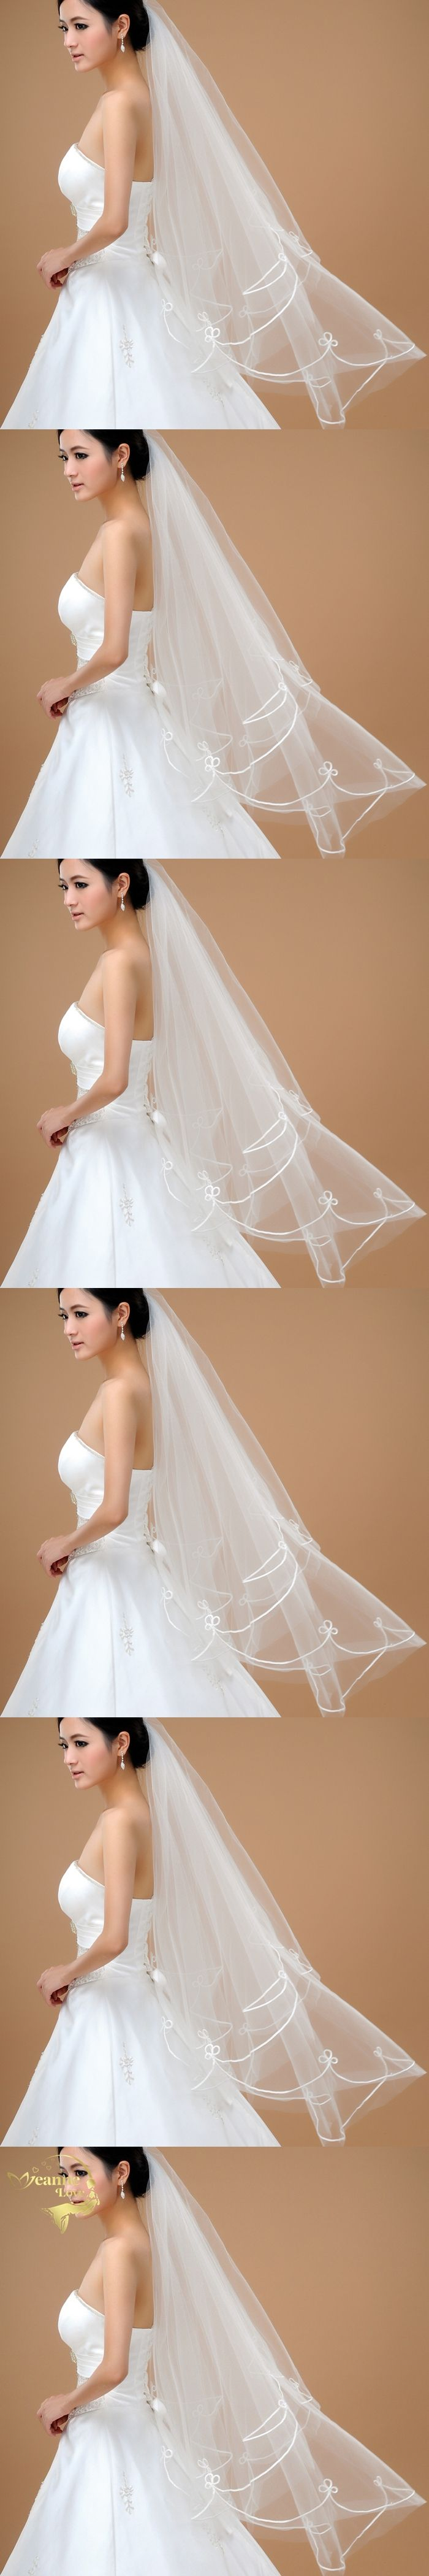 140cm Wholesale Simple Tulle Wedding Veils Two Layer Ribbon Edge Bridal Accesories White Ivory Wedding Veils ACCESSORIES OV32000